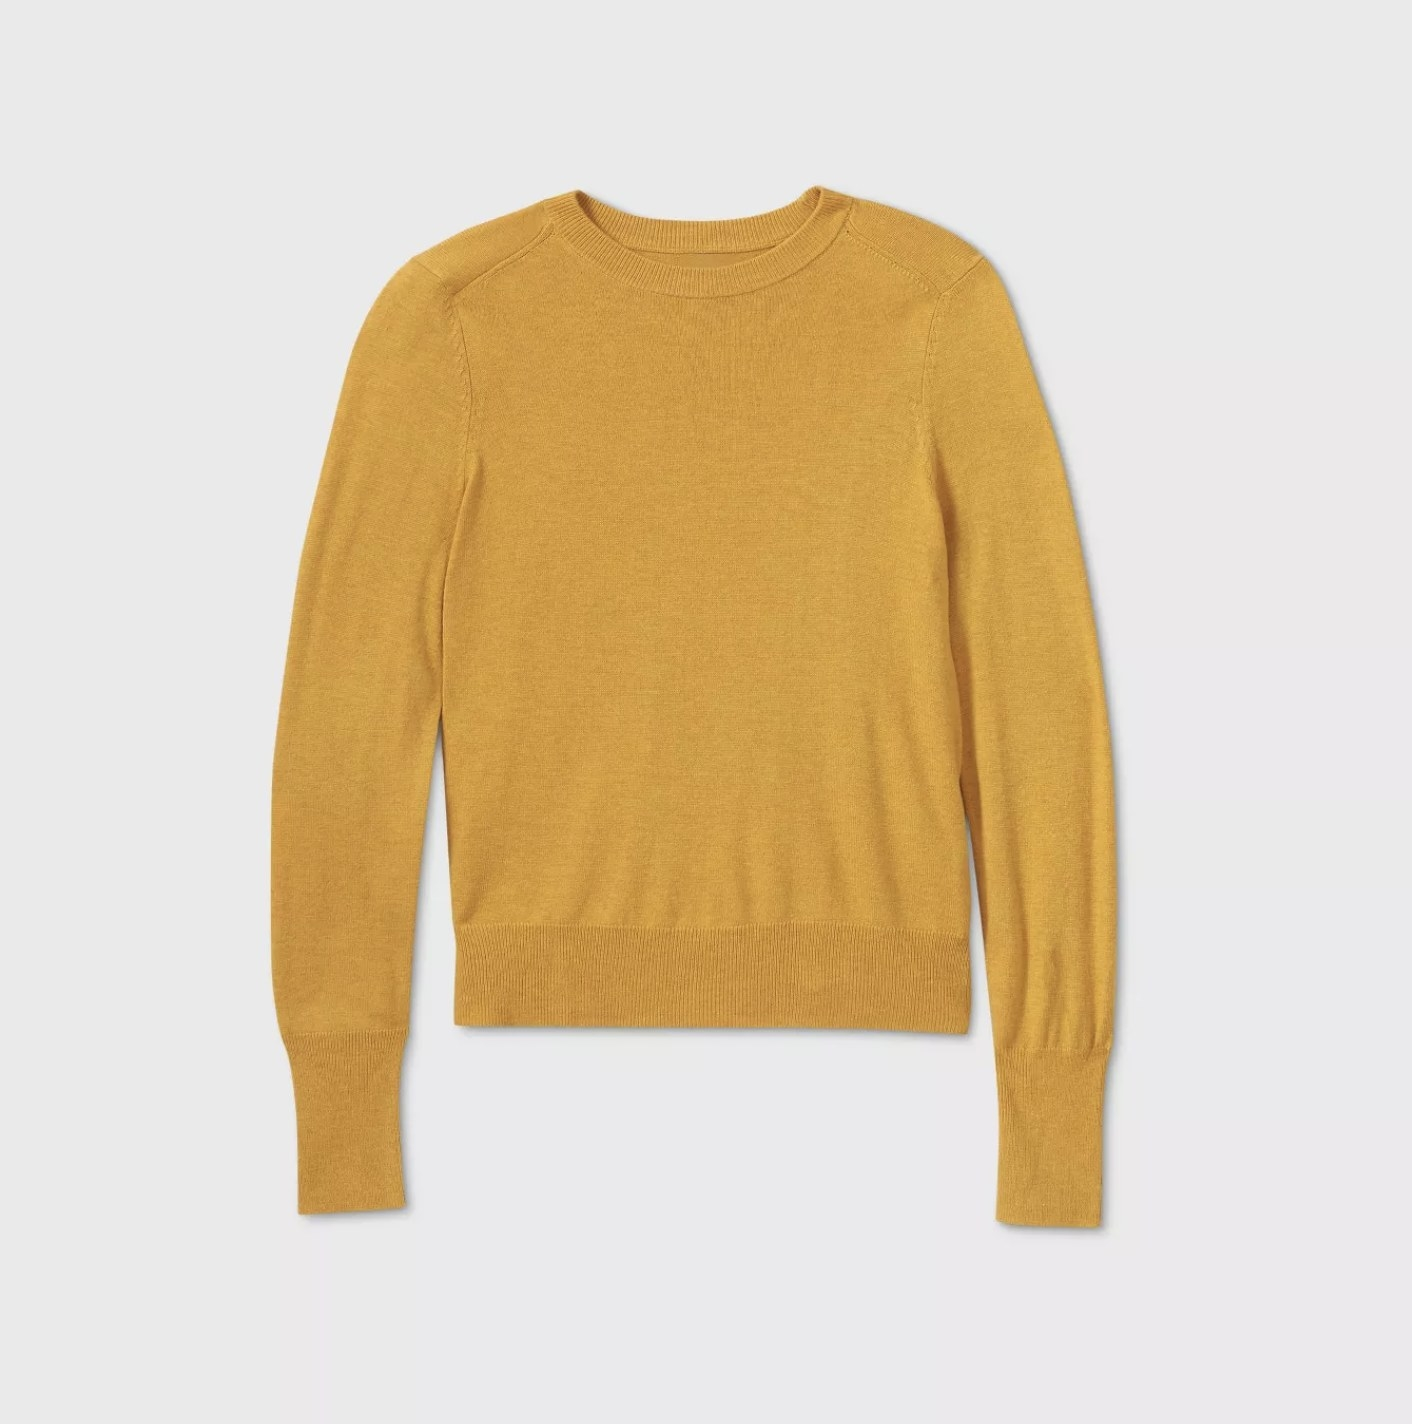 A mustard yellow crewneck pullover sweater